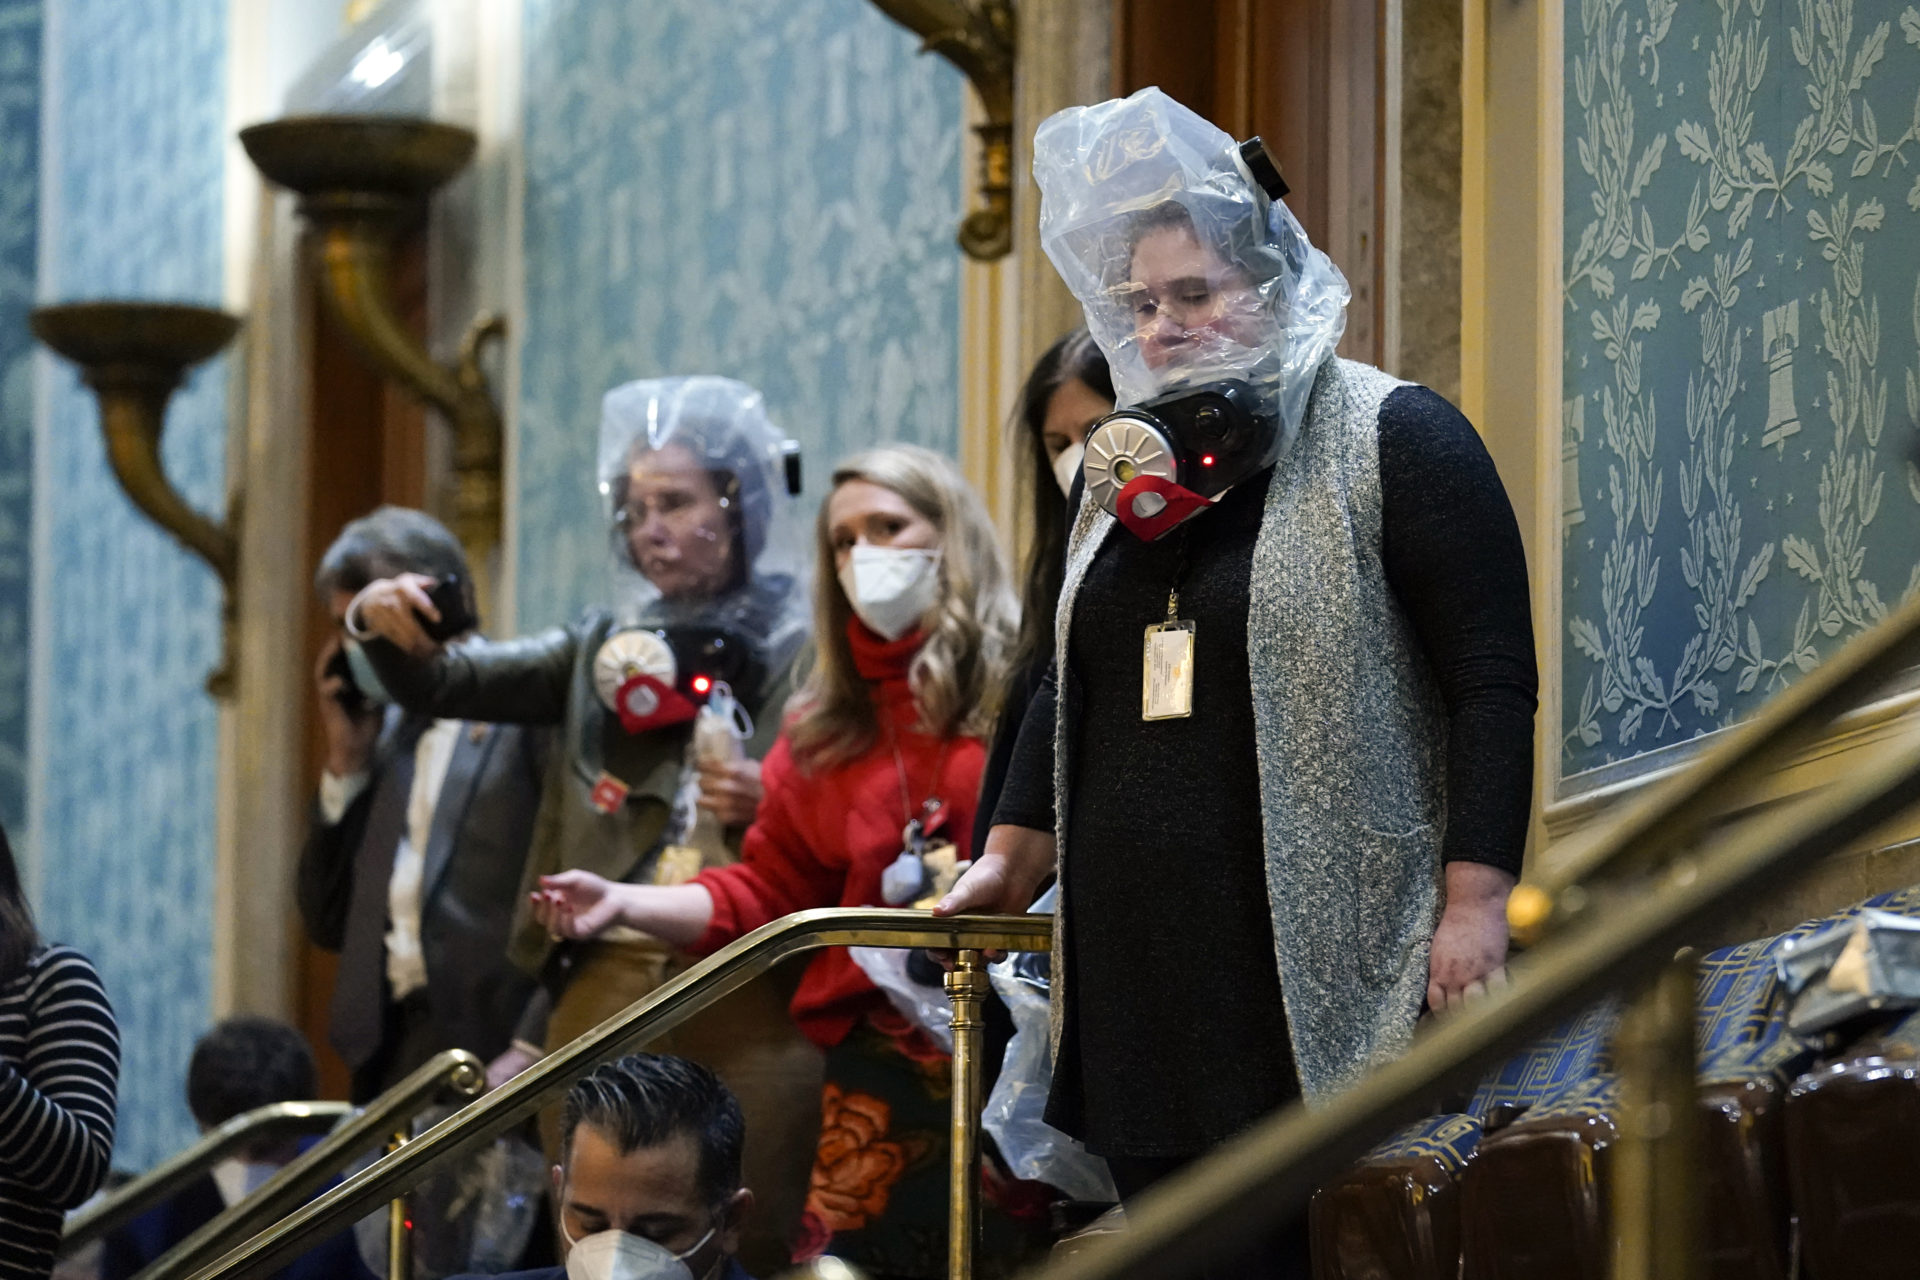 People are seen in the House gallery as protesters try to break into the House Chamber. (Andrew Harnik/AP)